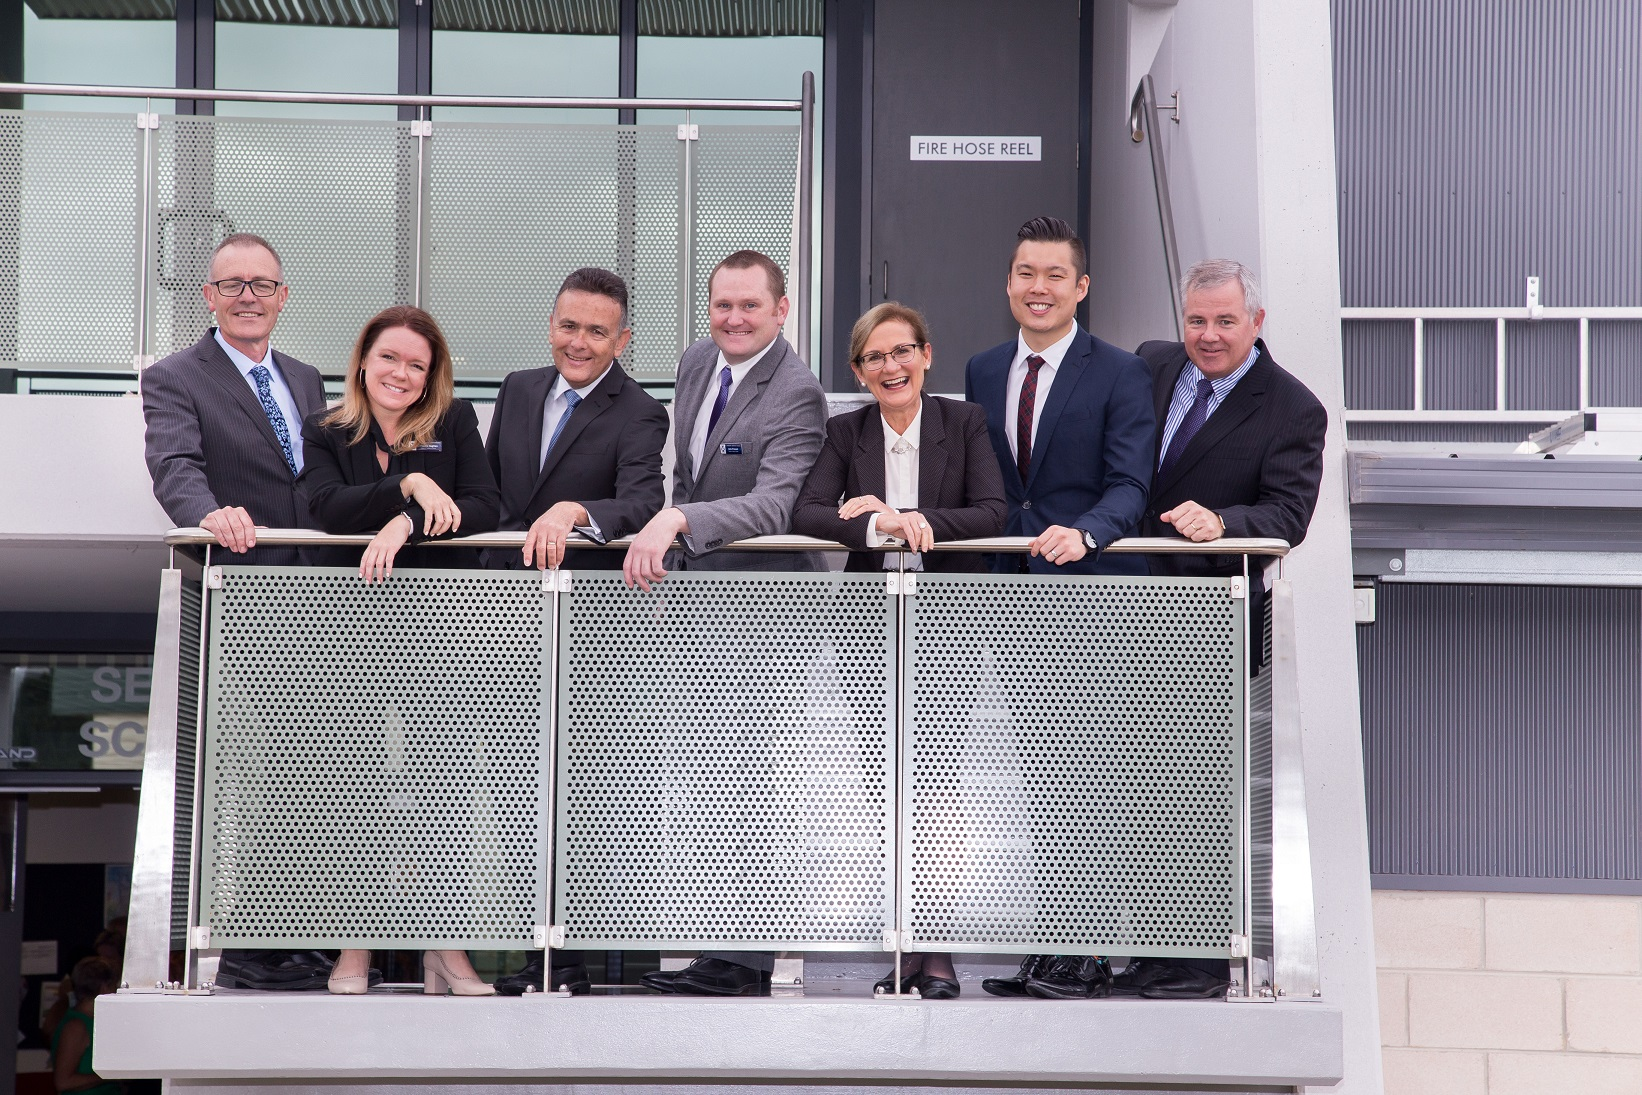 St Andrews Christian College Board – October 2018 Meeting